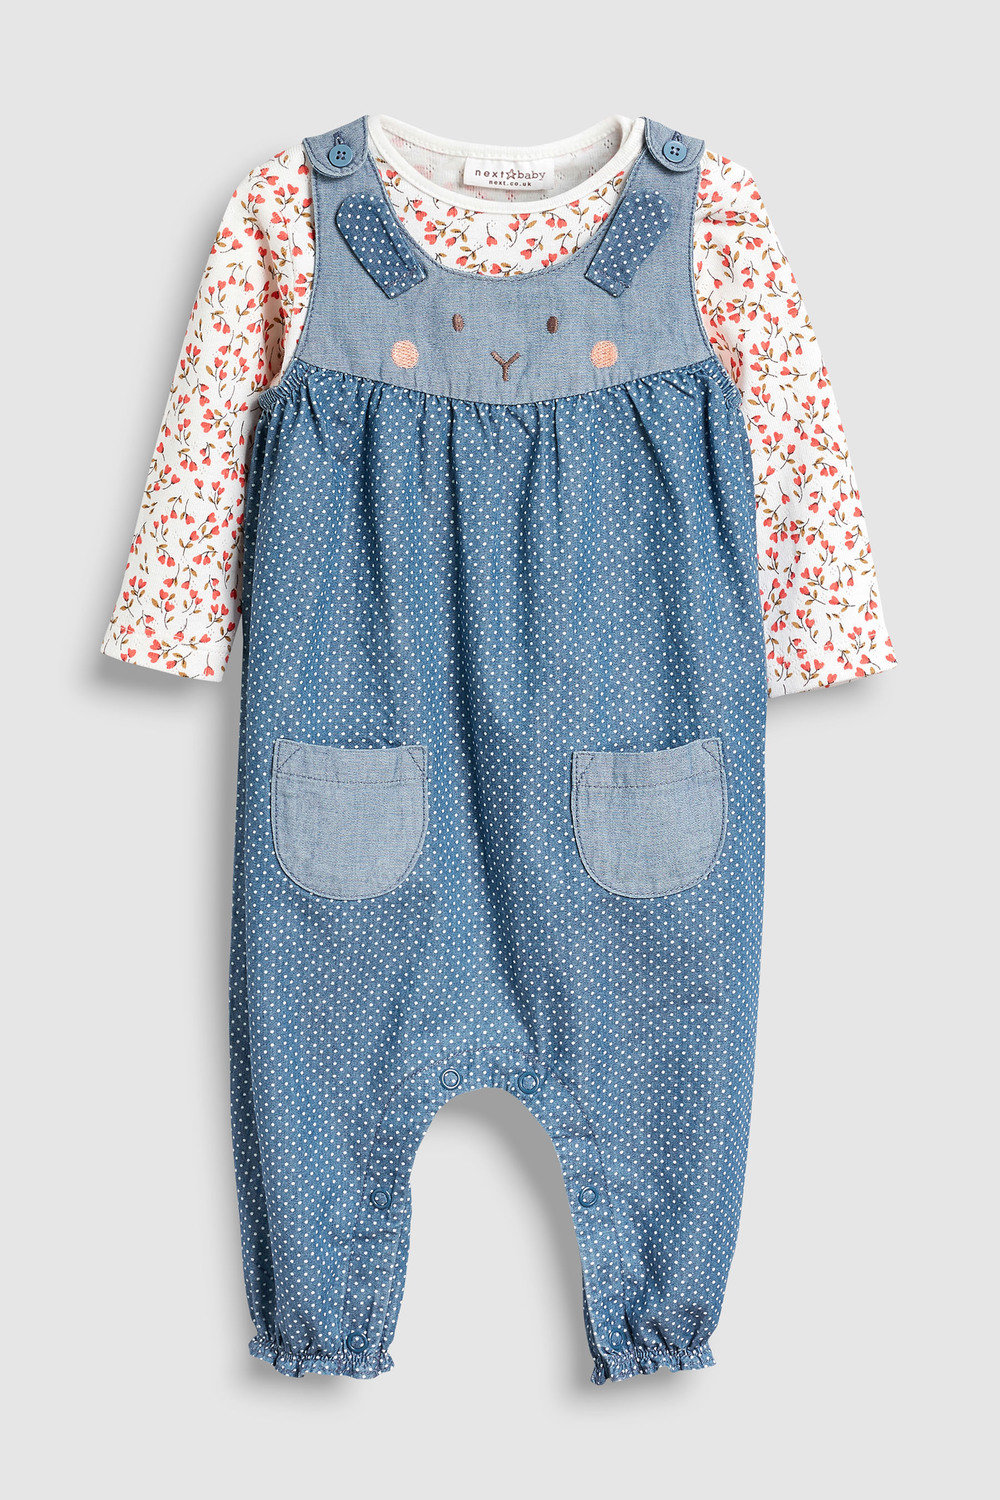 13df8c3ef Next Character Dungarees And Bodysuit Set (0mths-2yrs) Online